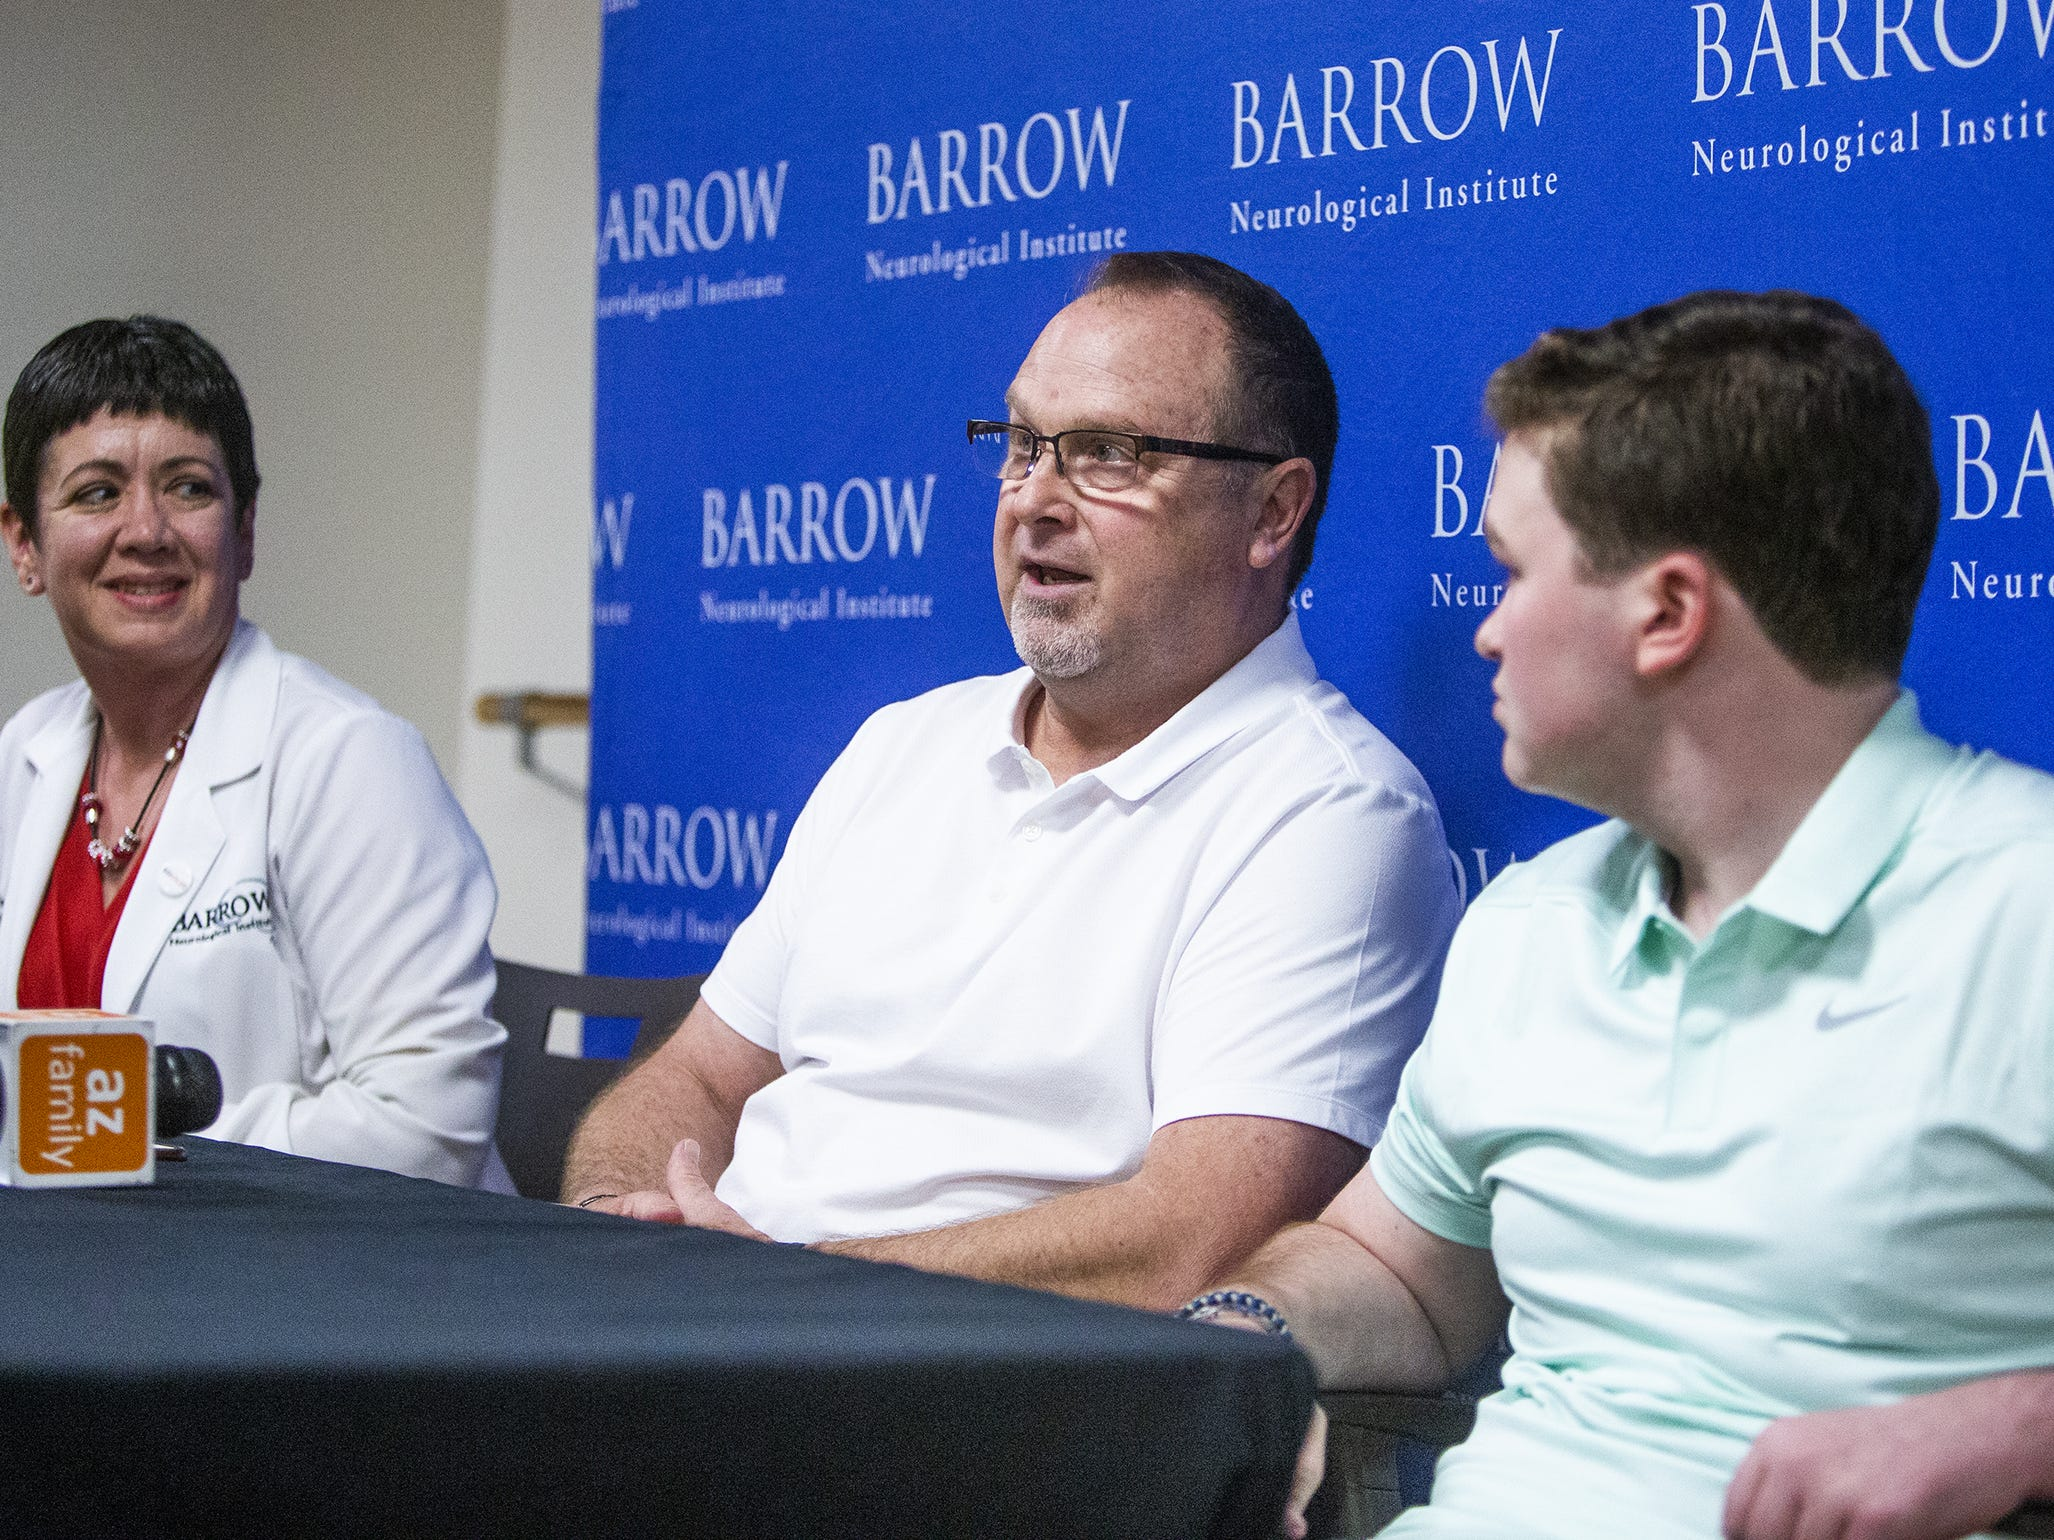 Brody Burnell, 20, right, survived a horrific airplane crash in 2017 and has made a miraculous recovery from multiple injuries, including traumatic brain injury.  Burnell and his doctor, Christina Kwasnica, M.D., left, and his father, Steve, middle, meet the press at Barrow Neurological Institute, Tuesday, March 19, 2019.